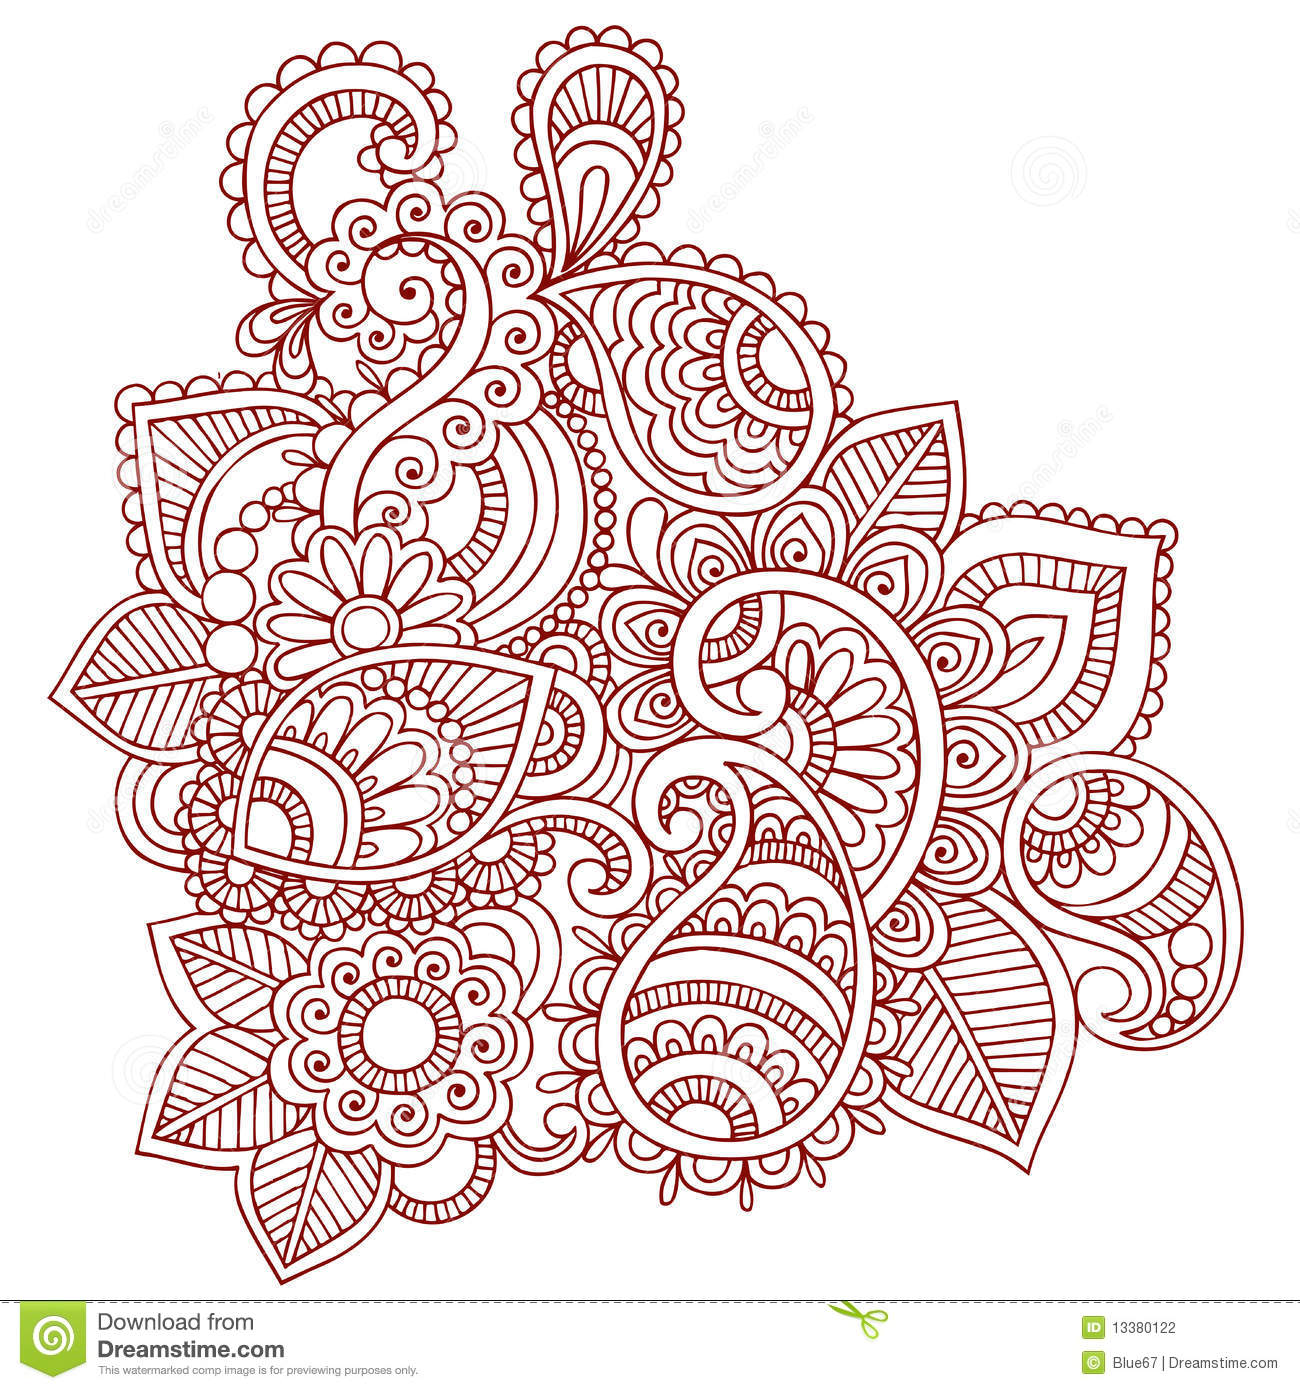 mehndi designs coloring book pages - photo#24